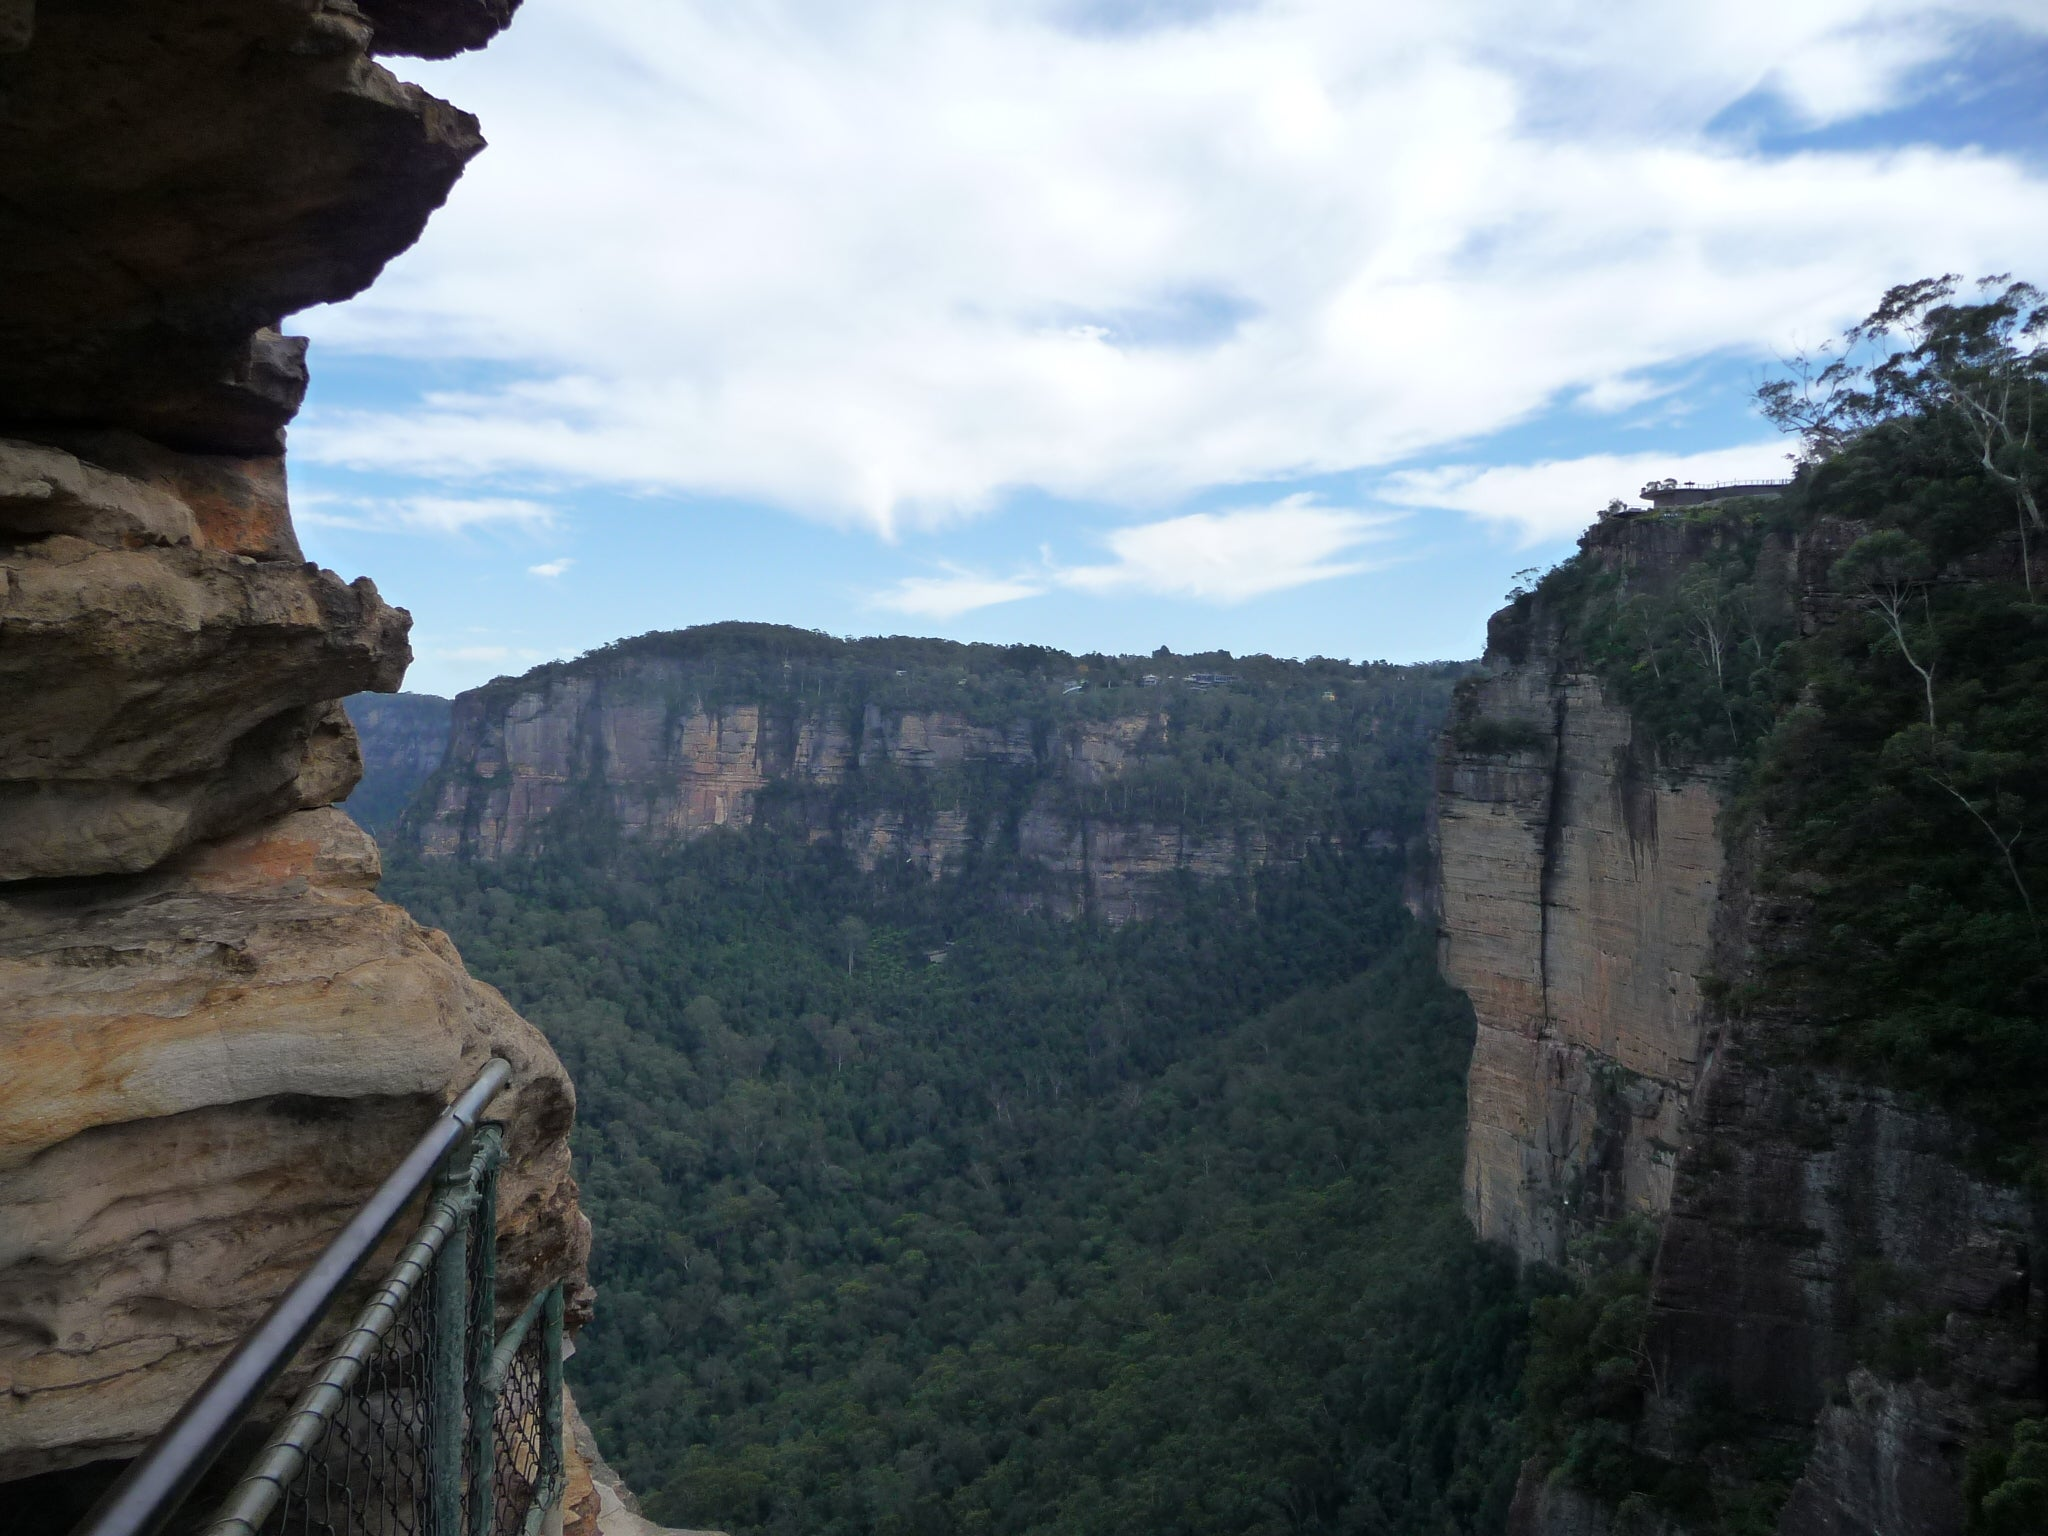 Puente en Parque nacional Blue Mountains